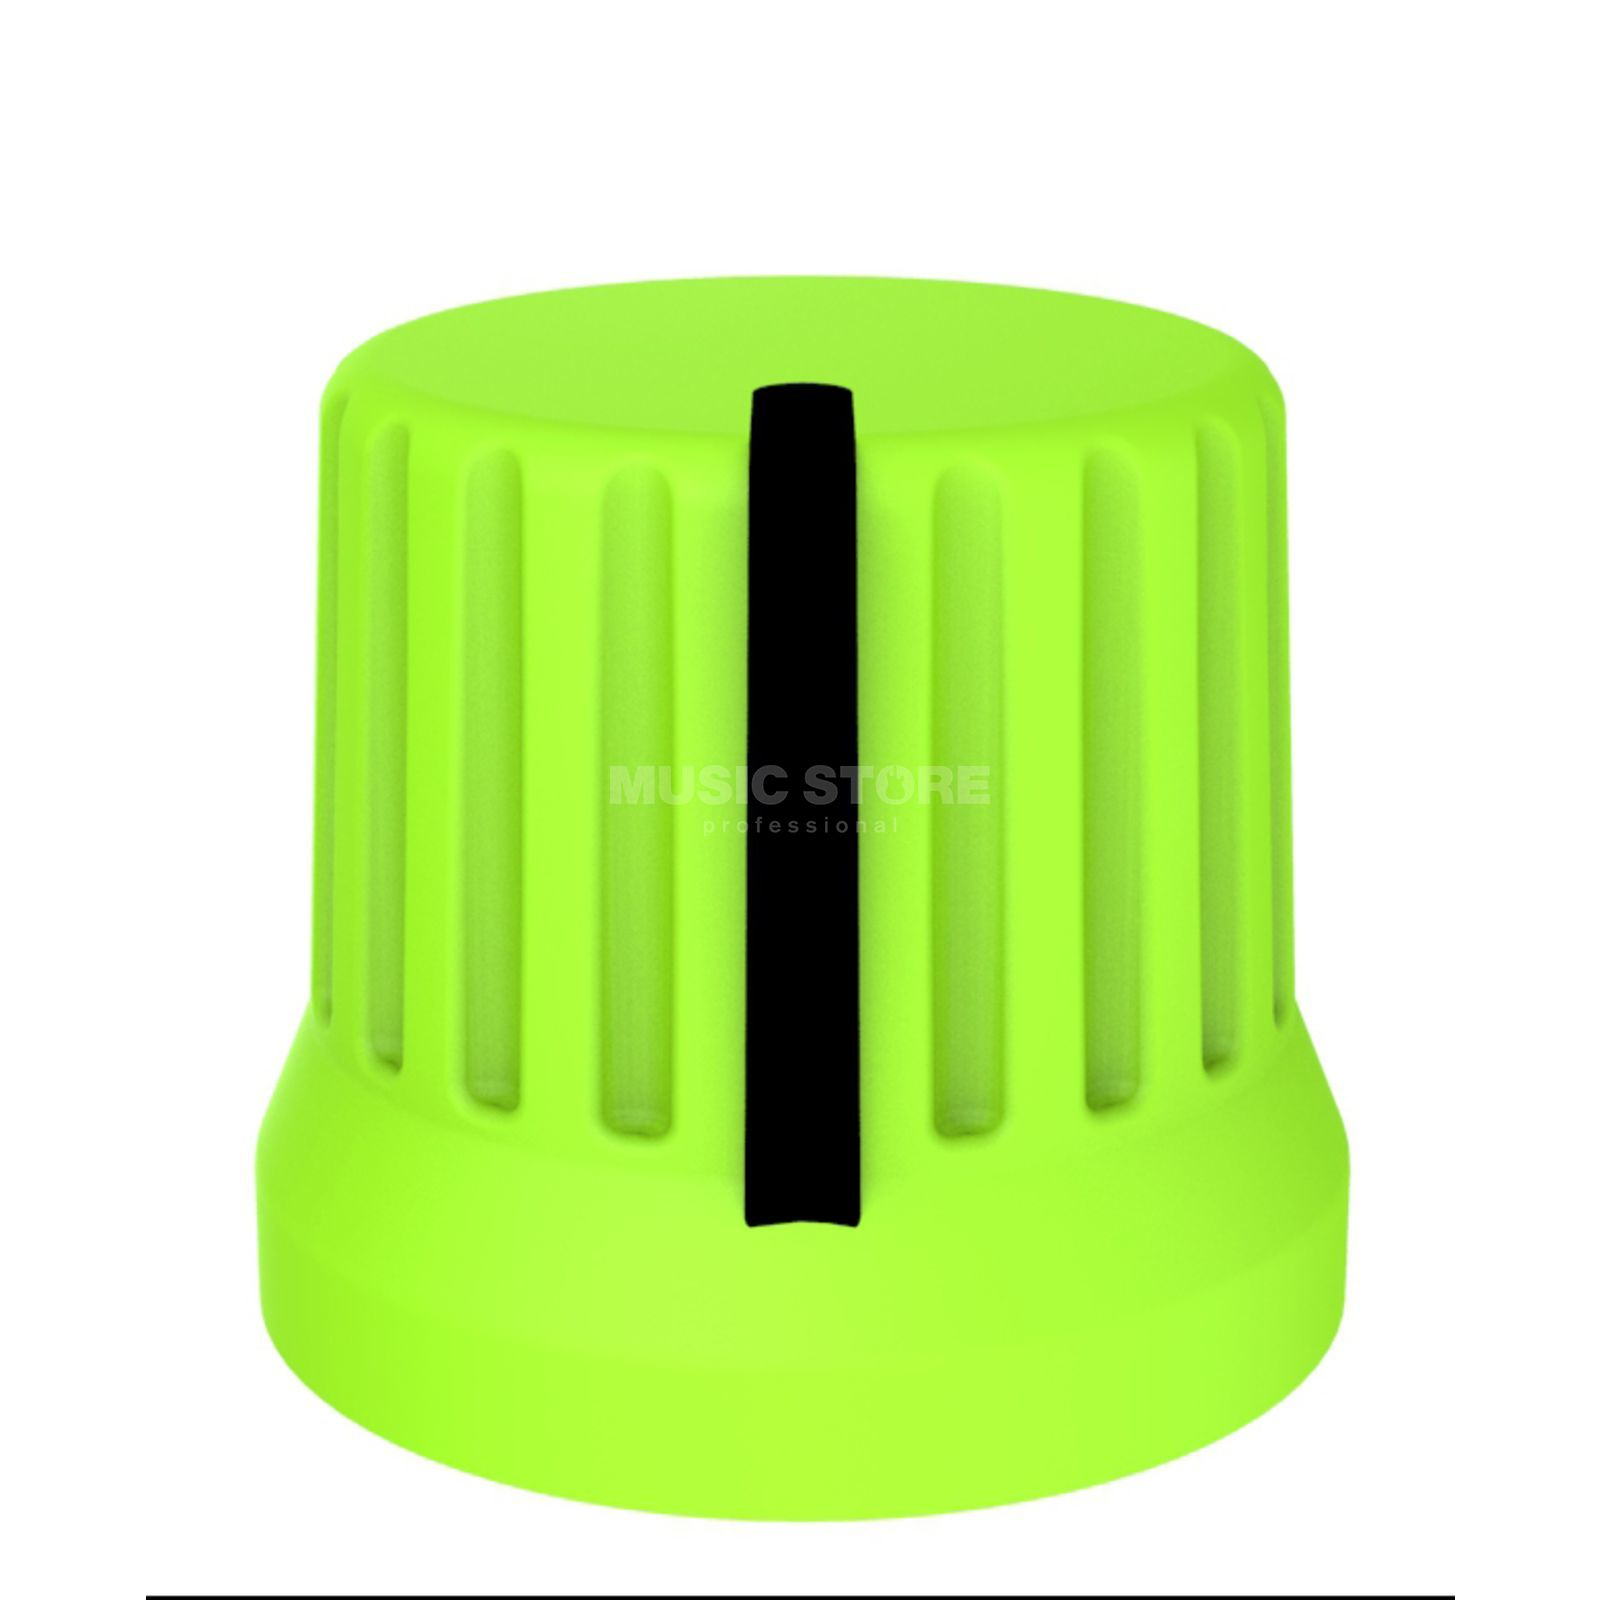 DJ TECHTOOLS Chroma Caps Fatty Knob green  Product Image